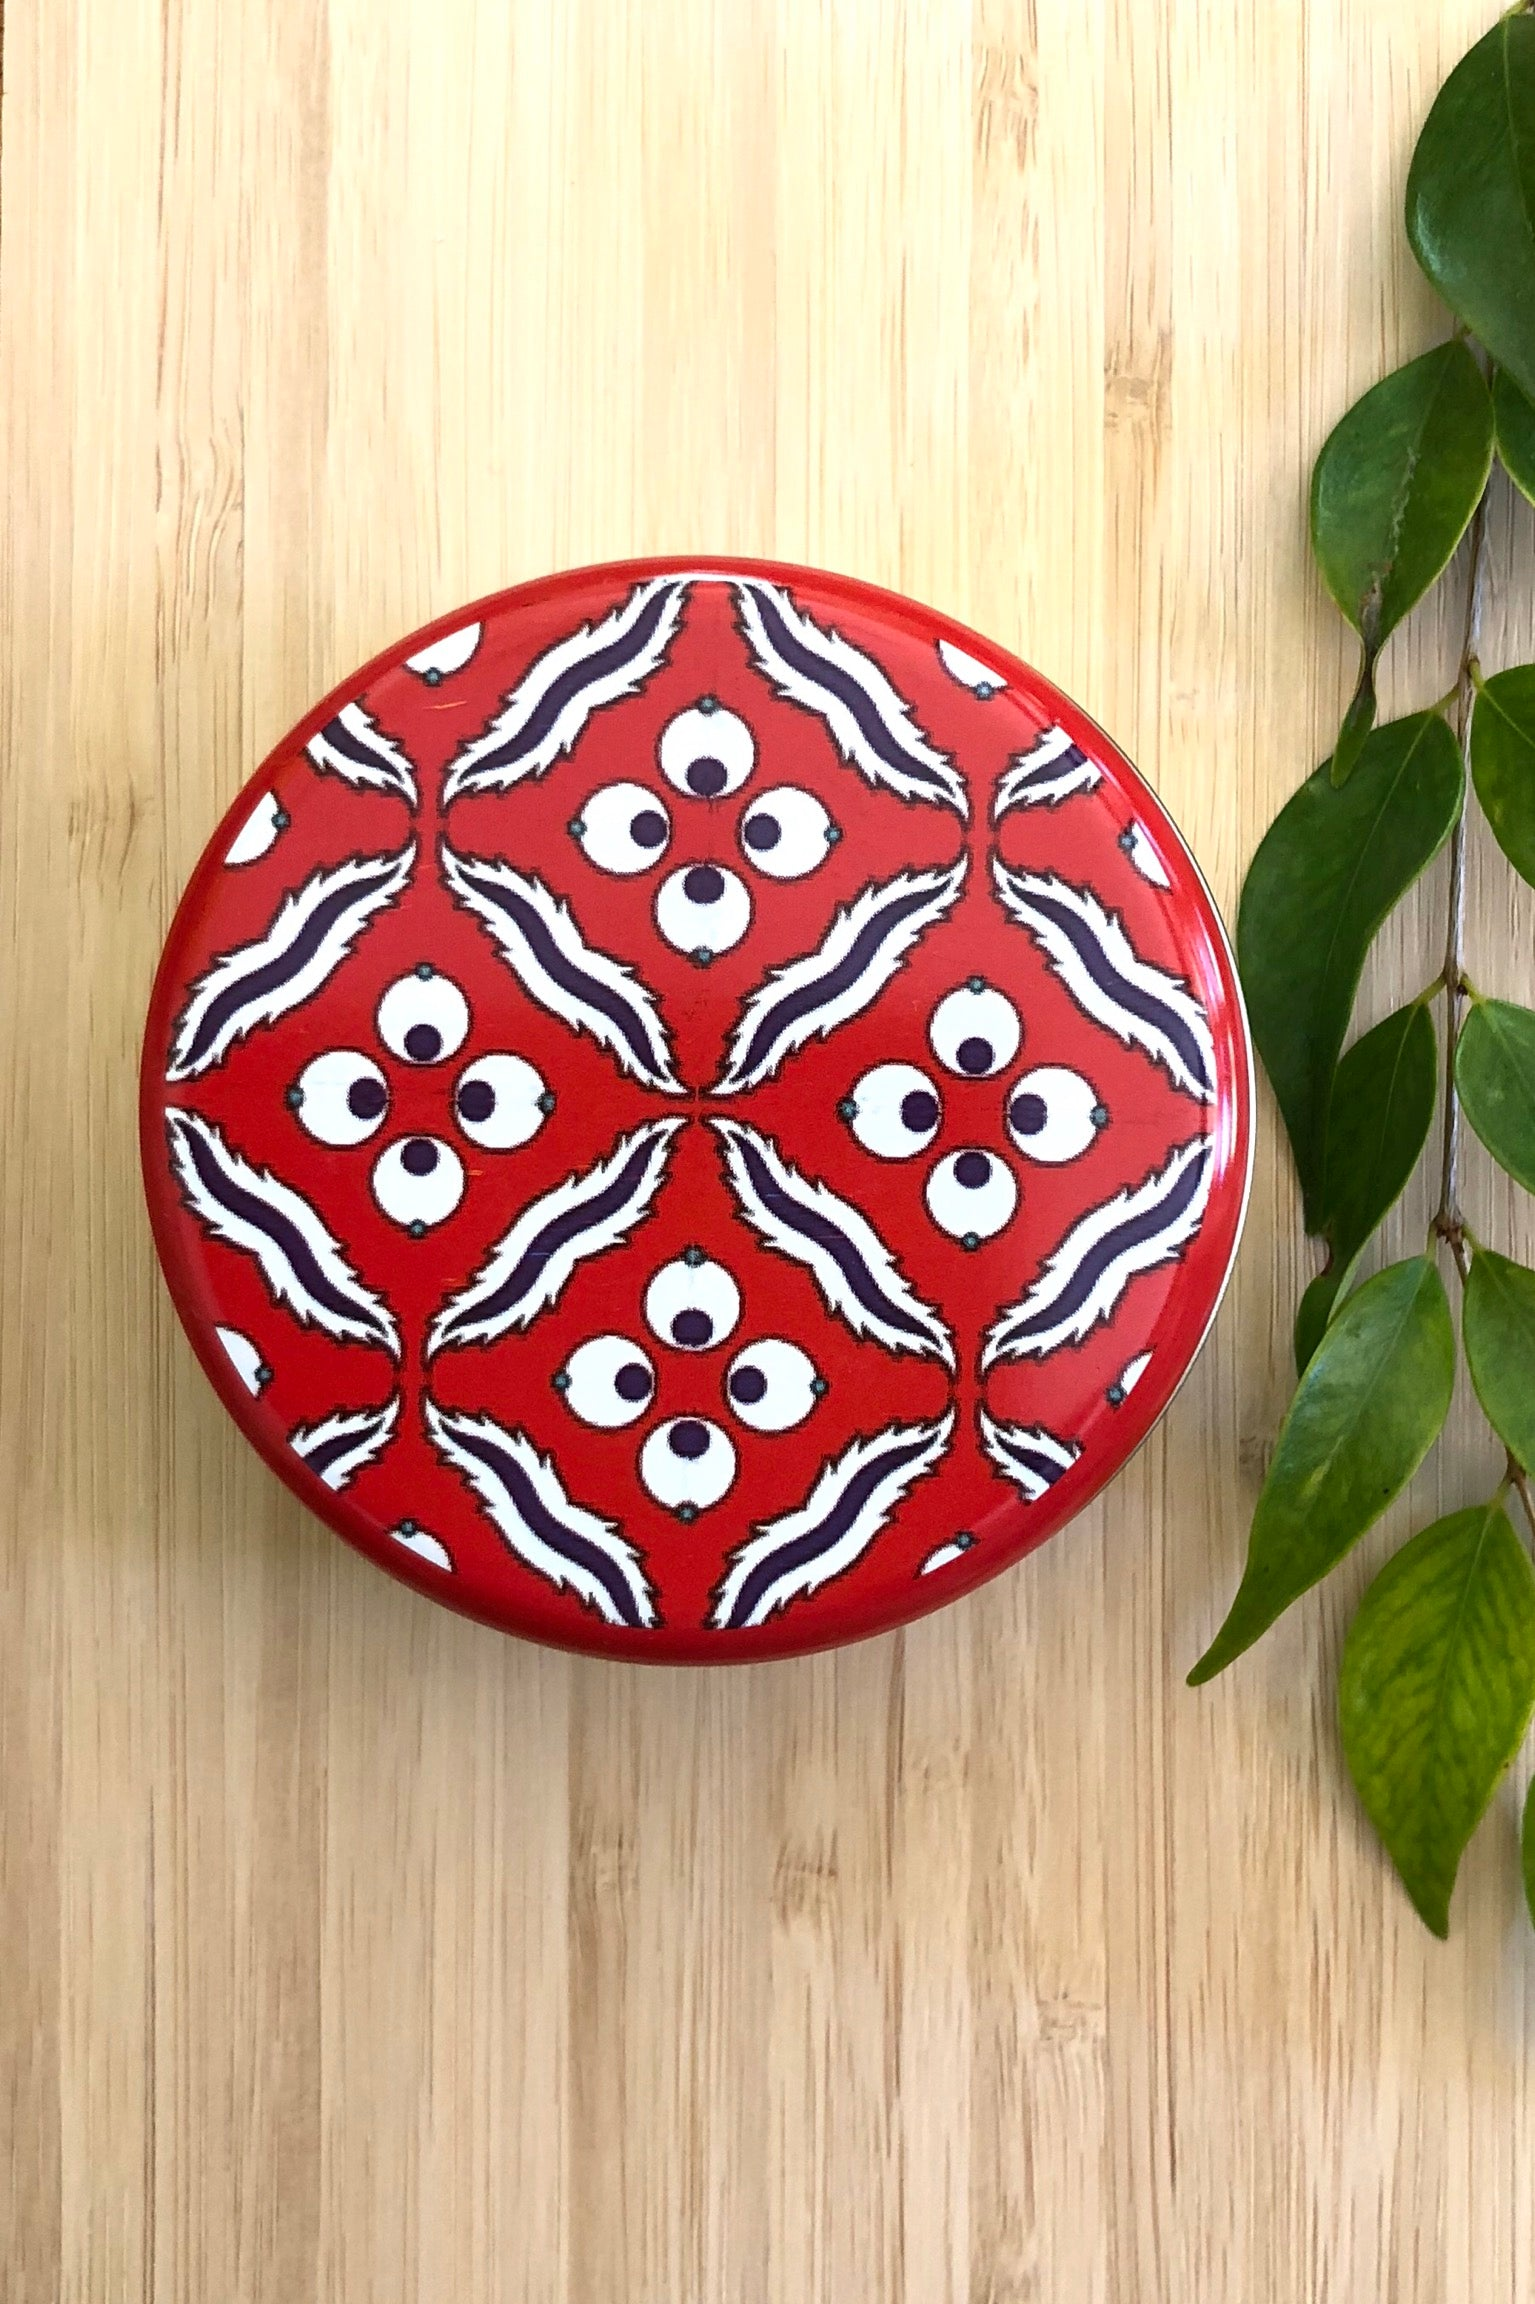 Olive Soap in a Turkish Tile Tin, Red Pomegranate Design